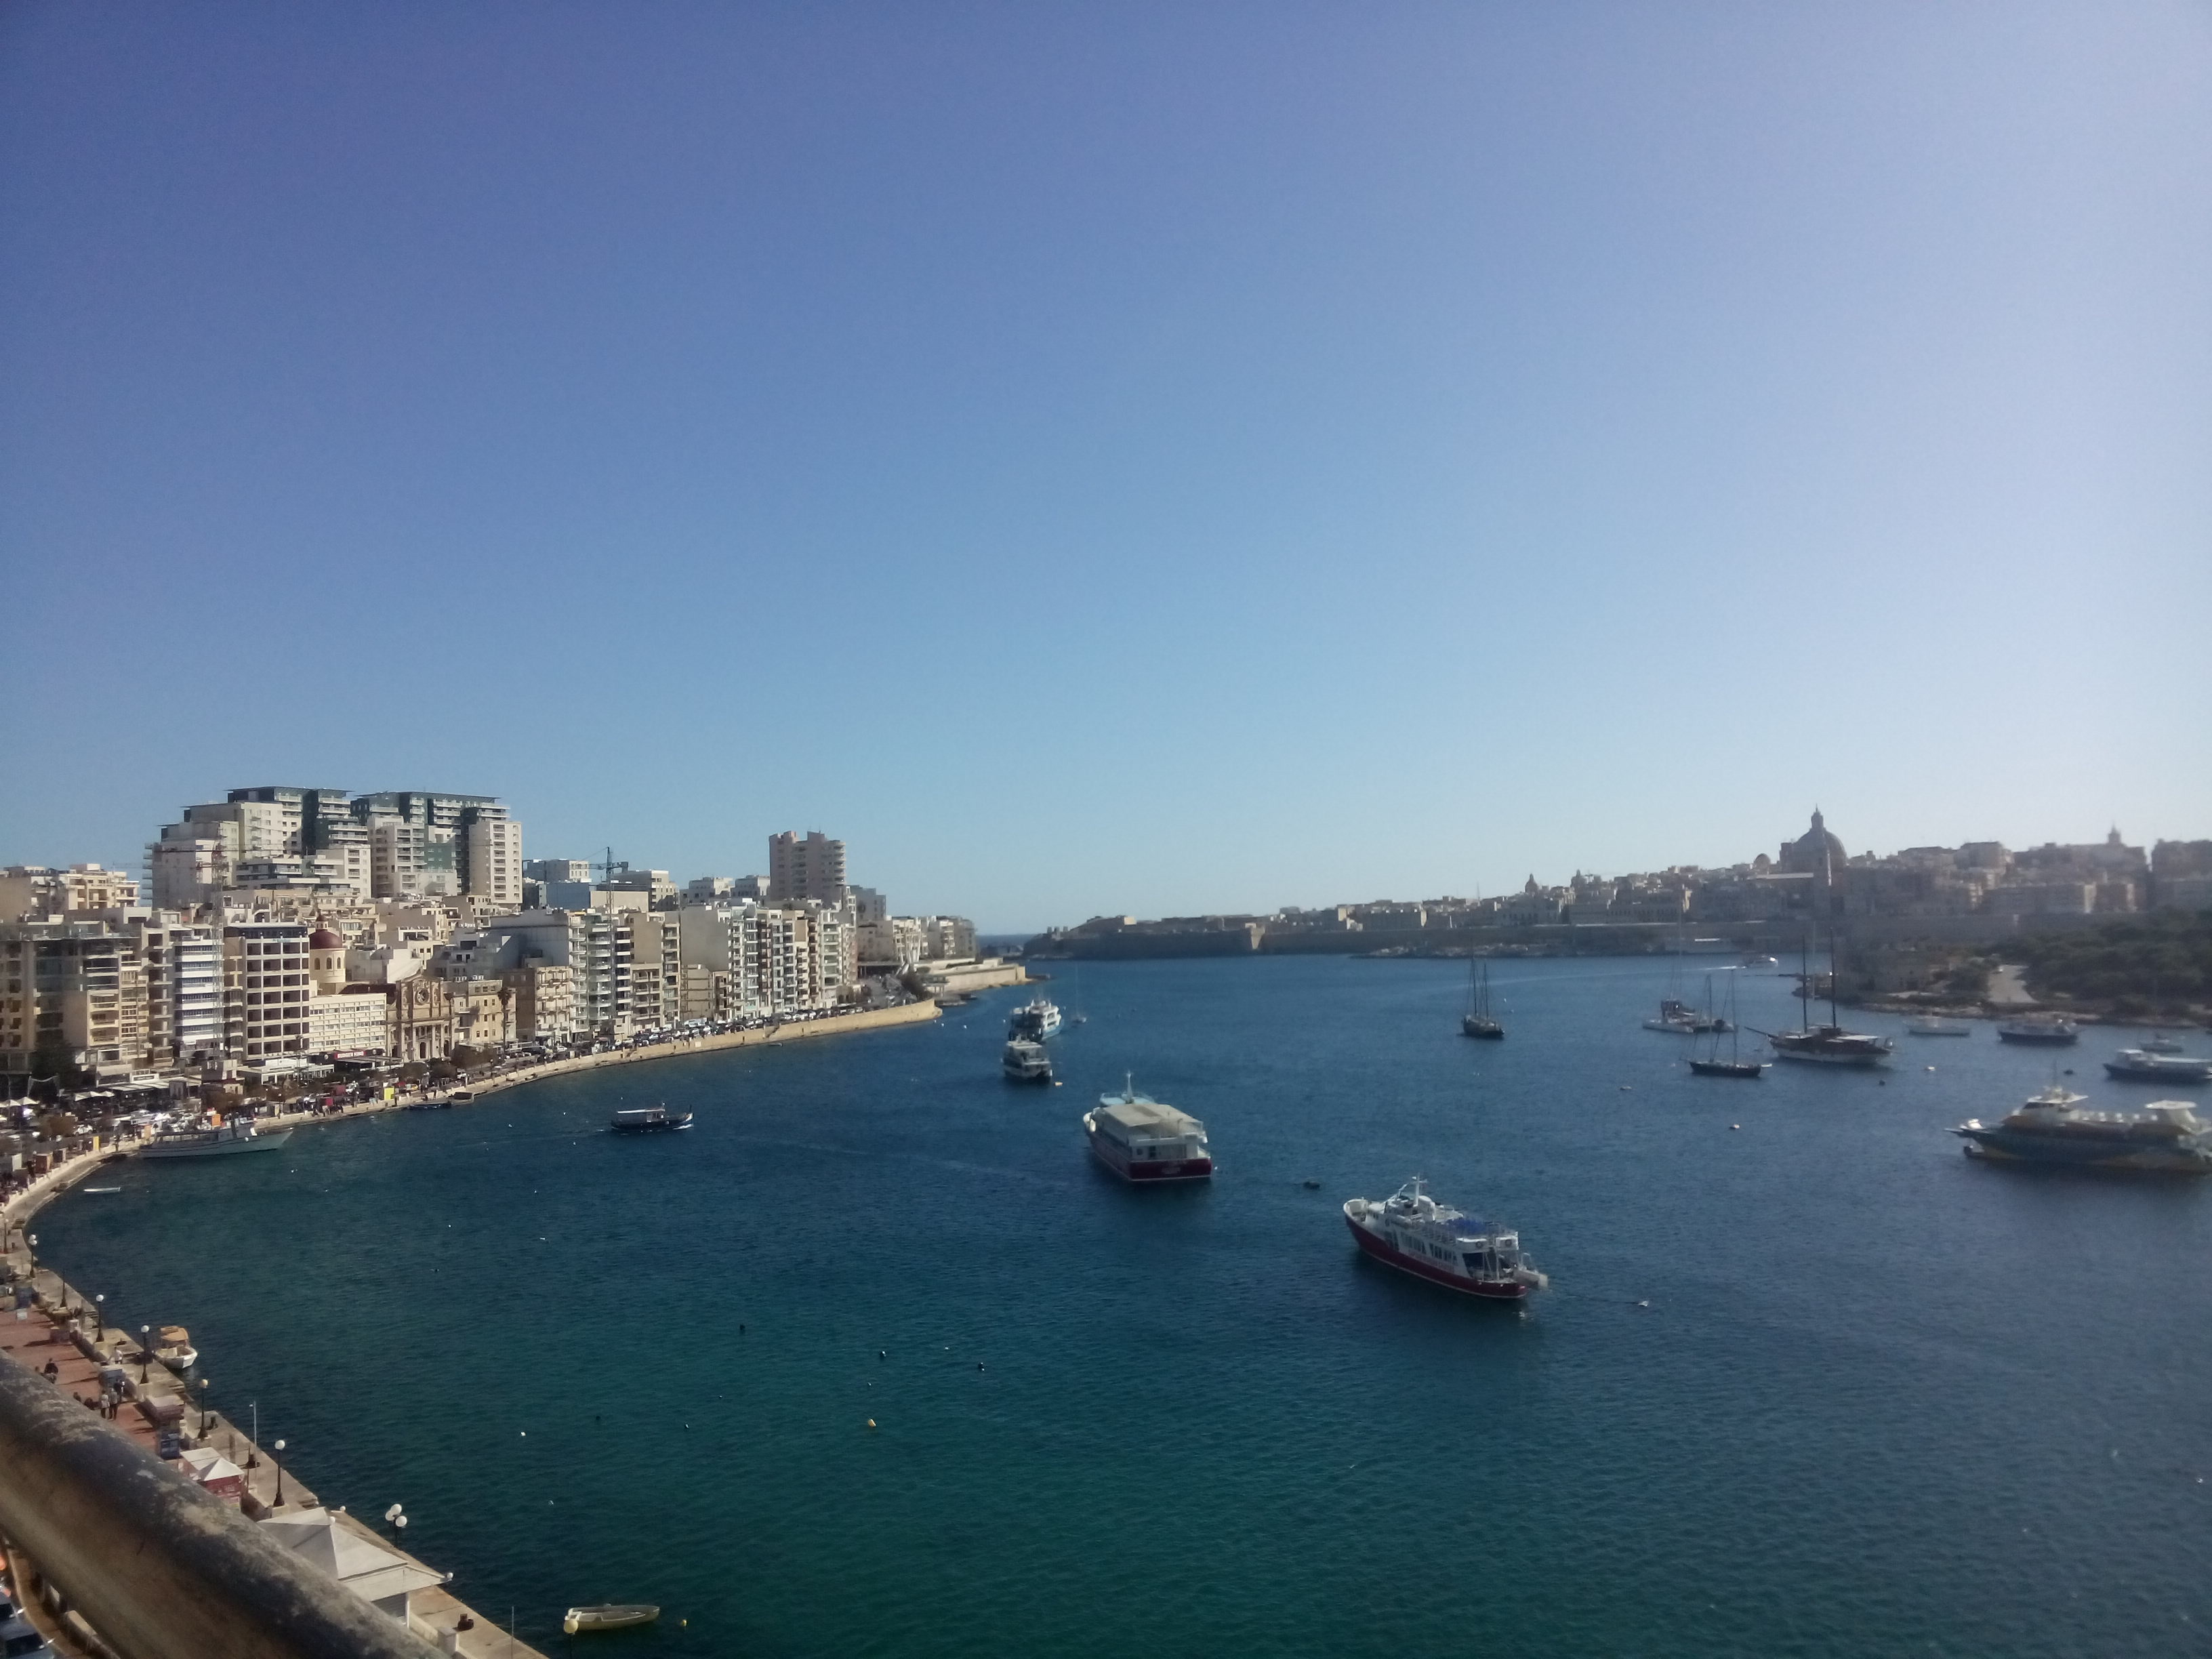 A view over a harbour with blue sea and sky